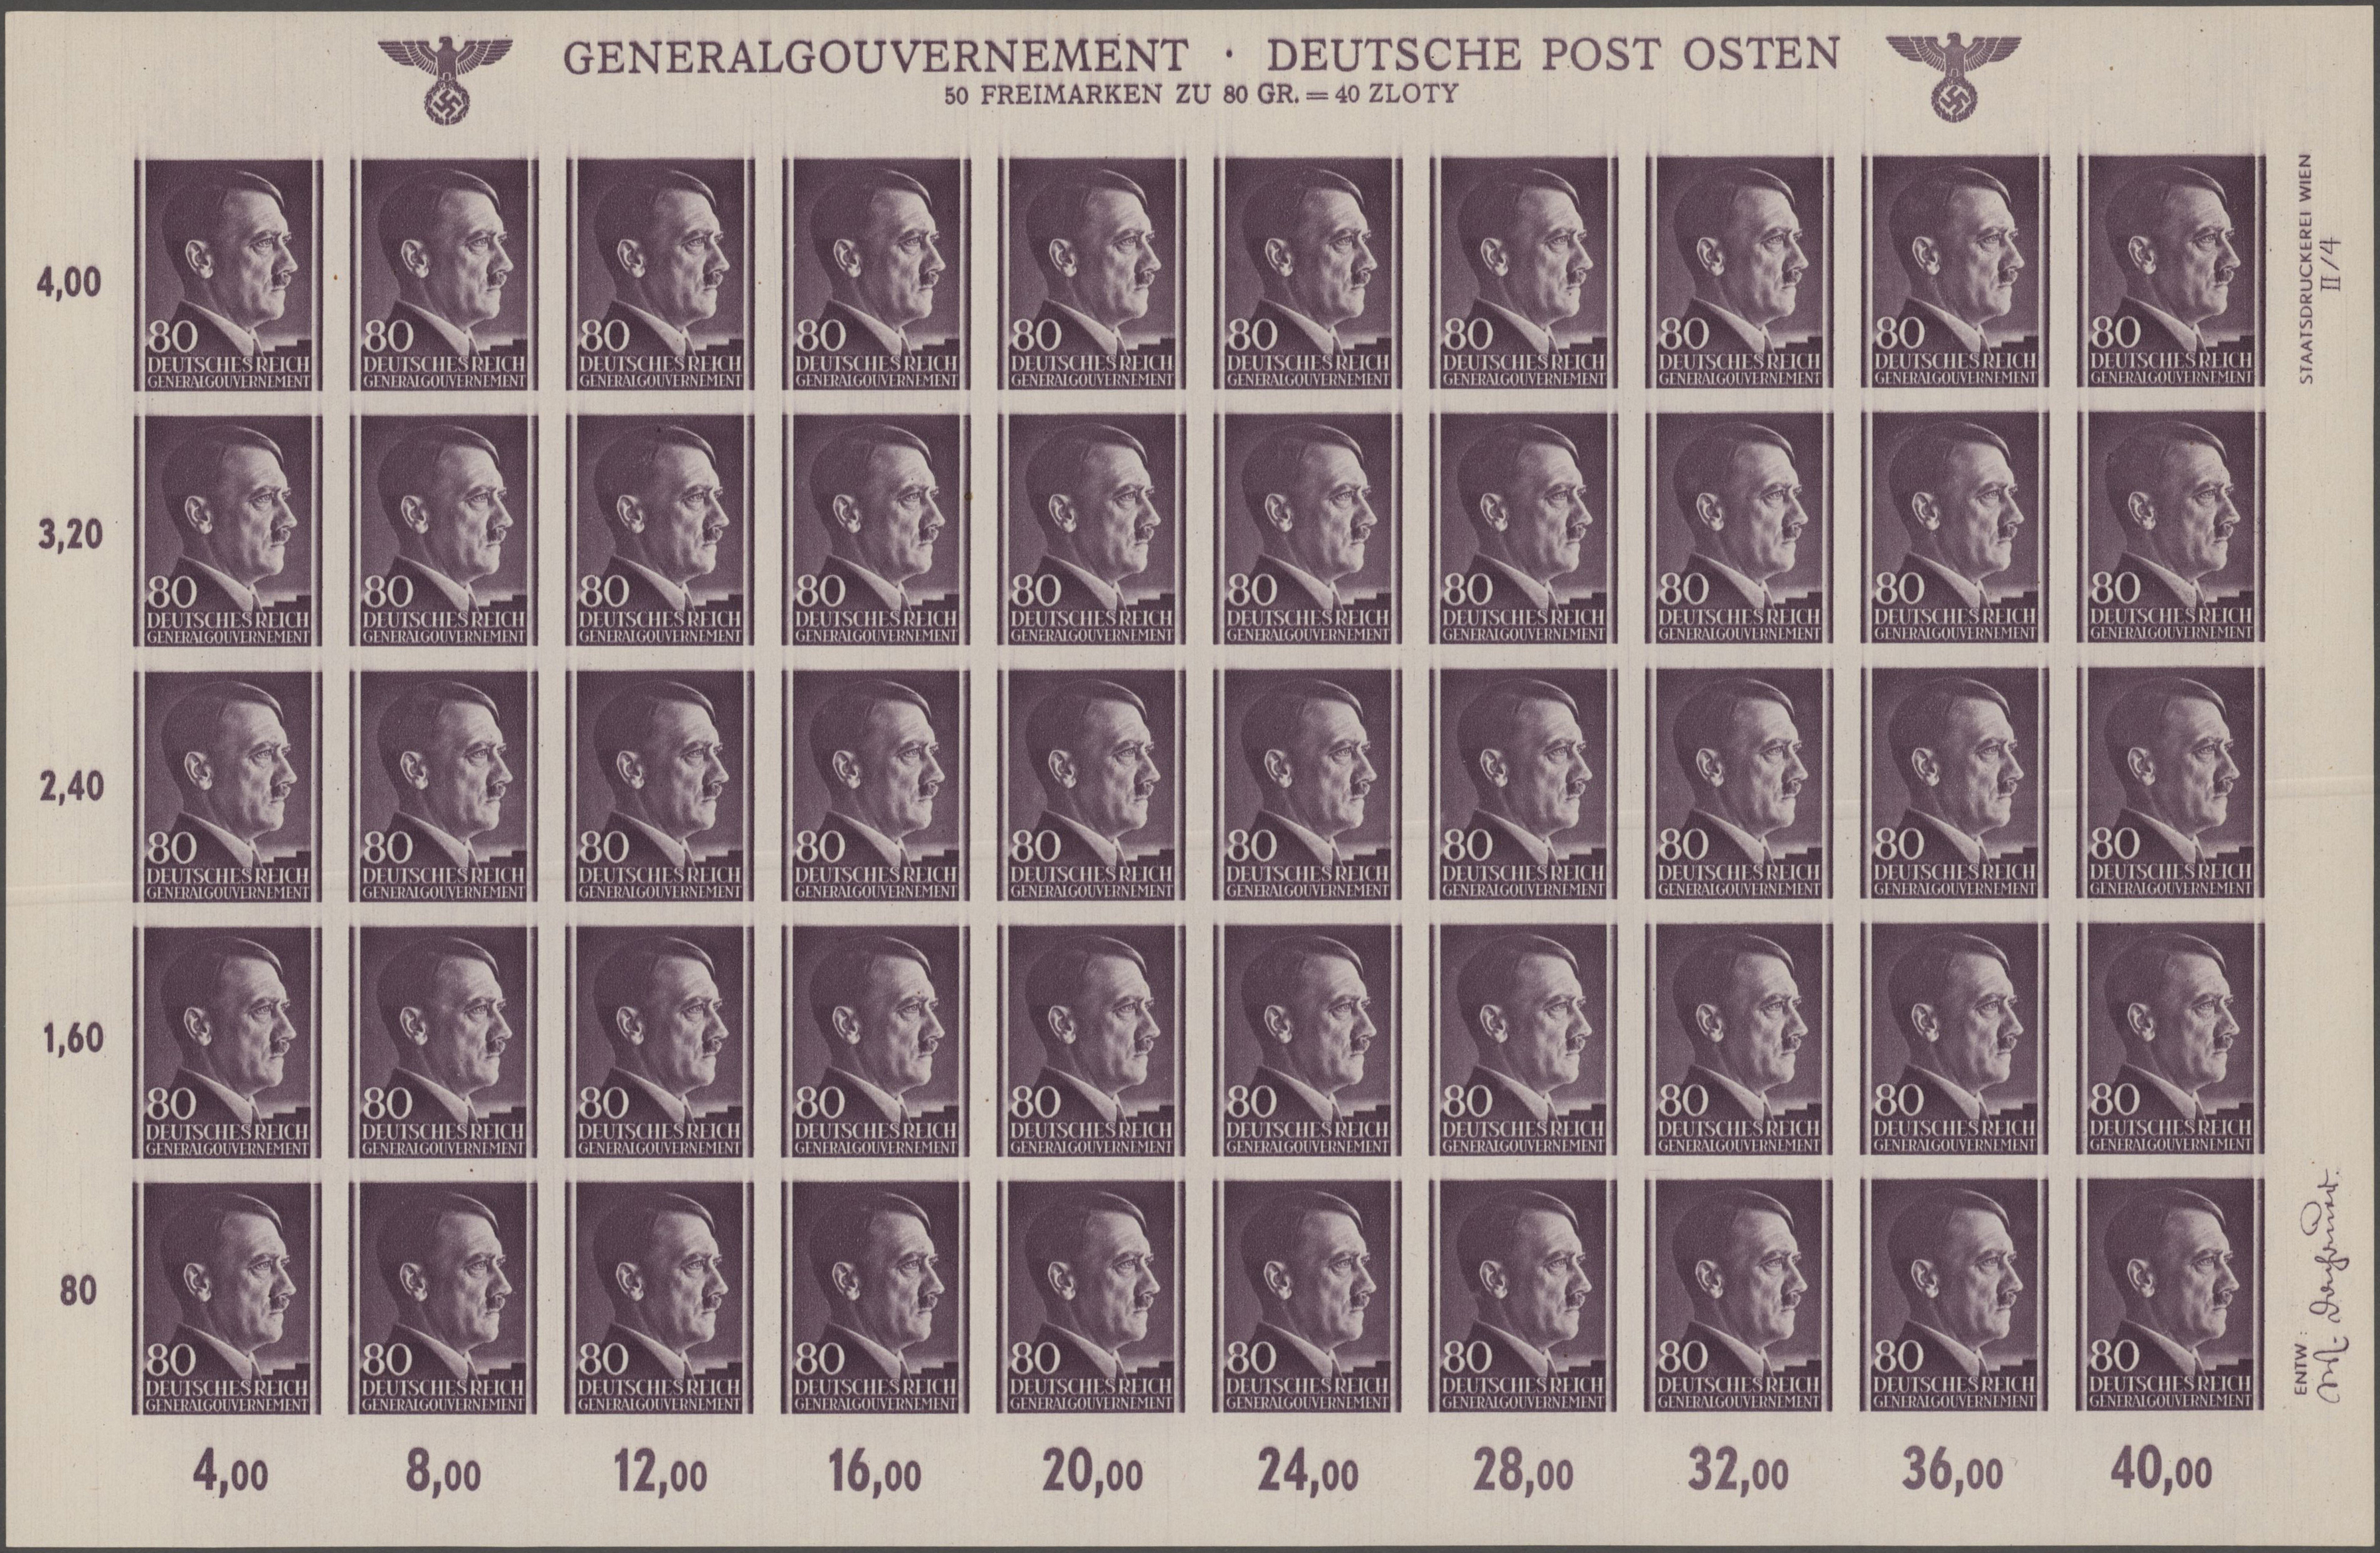 Lot 16763 - Dt. Besetzung II WK - Generalgouvernement  -  Auktionshaus Christoph Gärtner GmbH & Co. KG Sale #47 Single lots: Germany, Picture Postcards